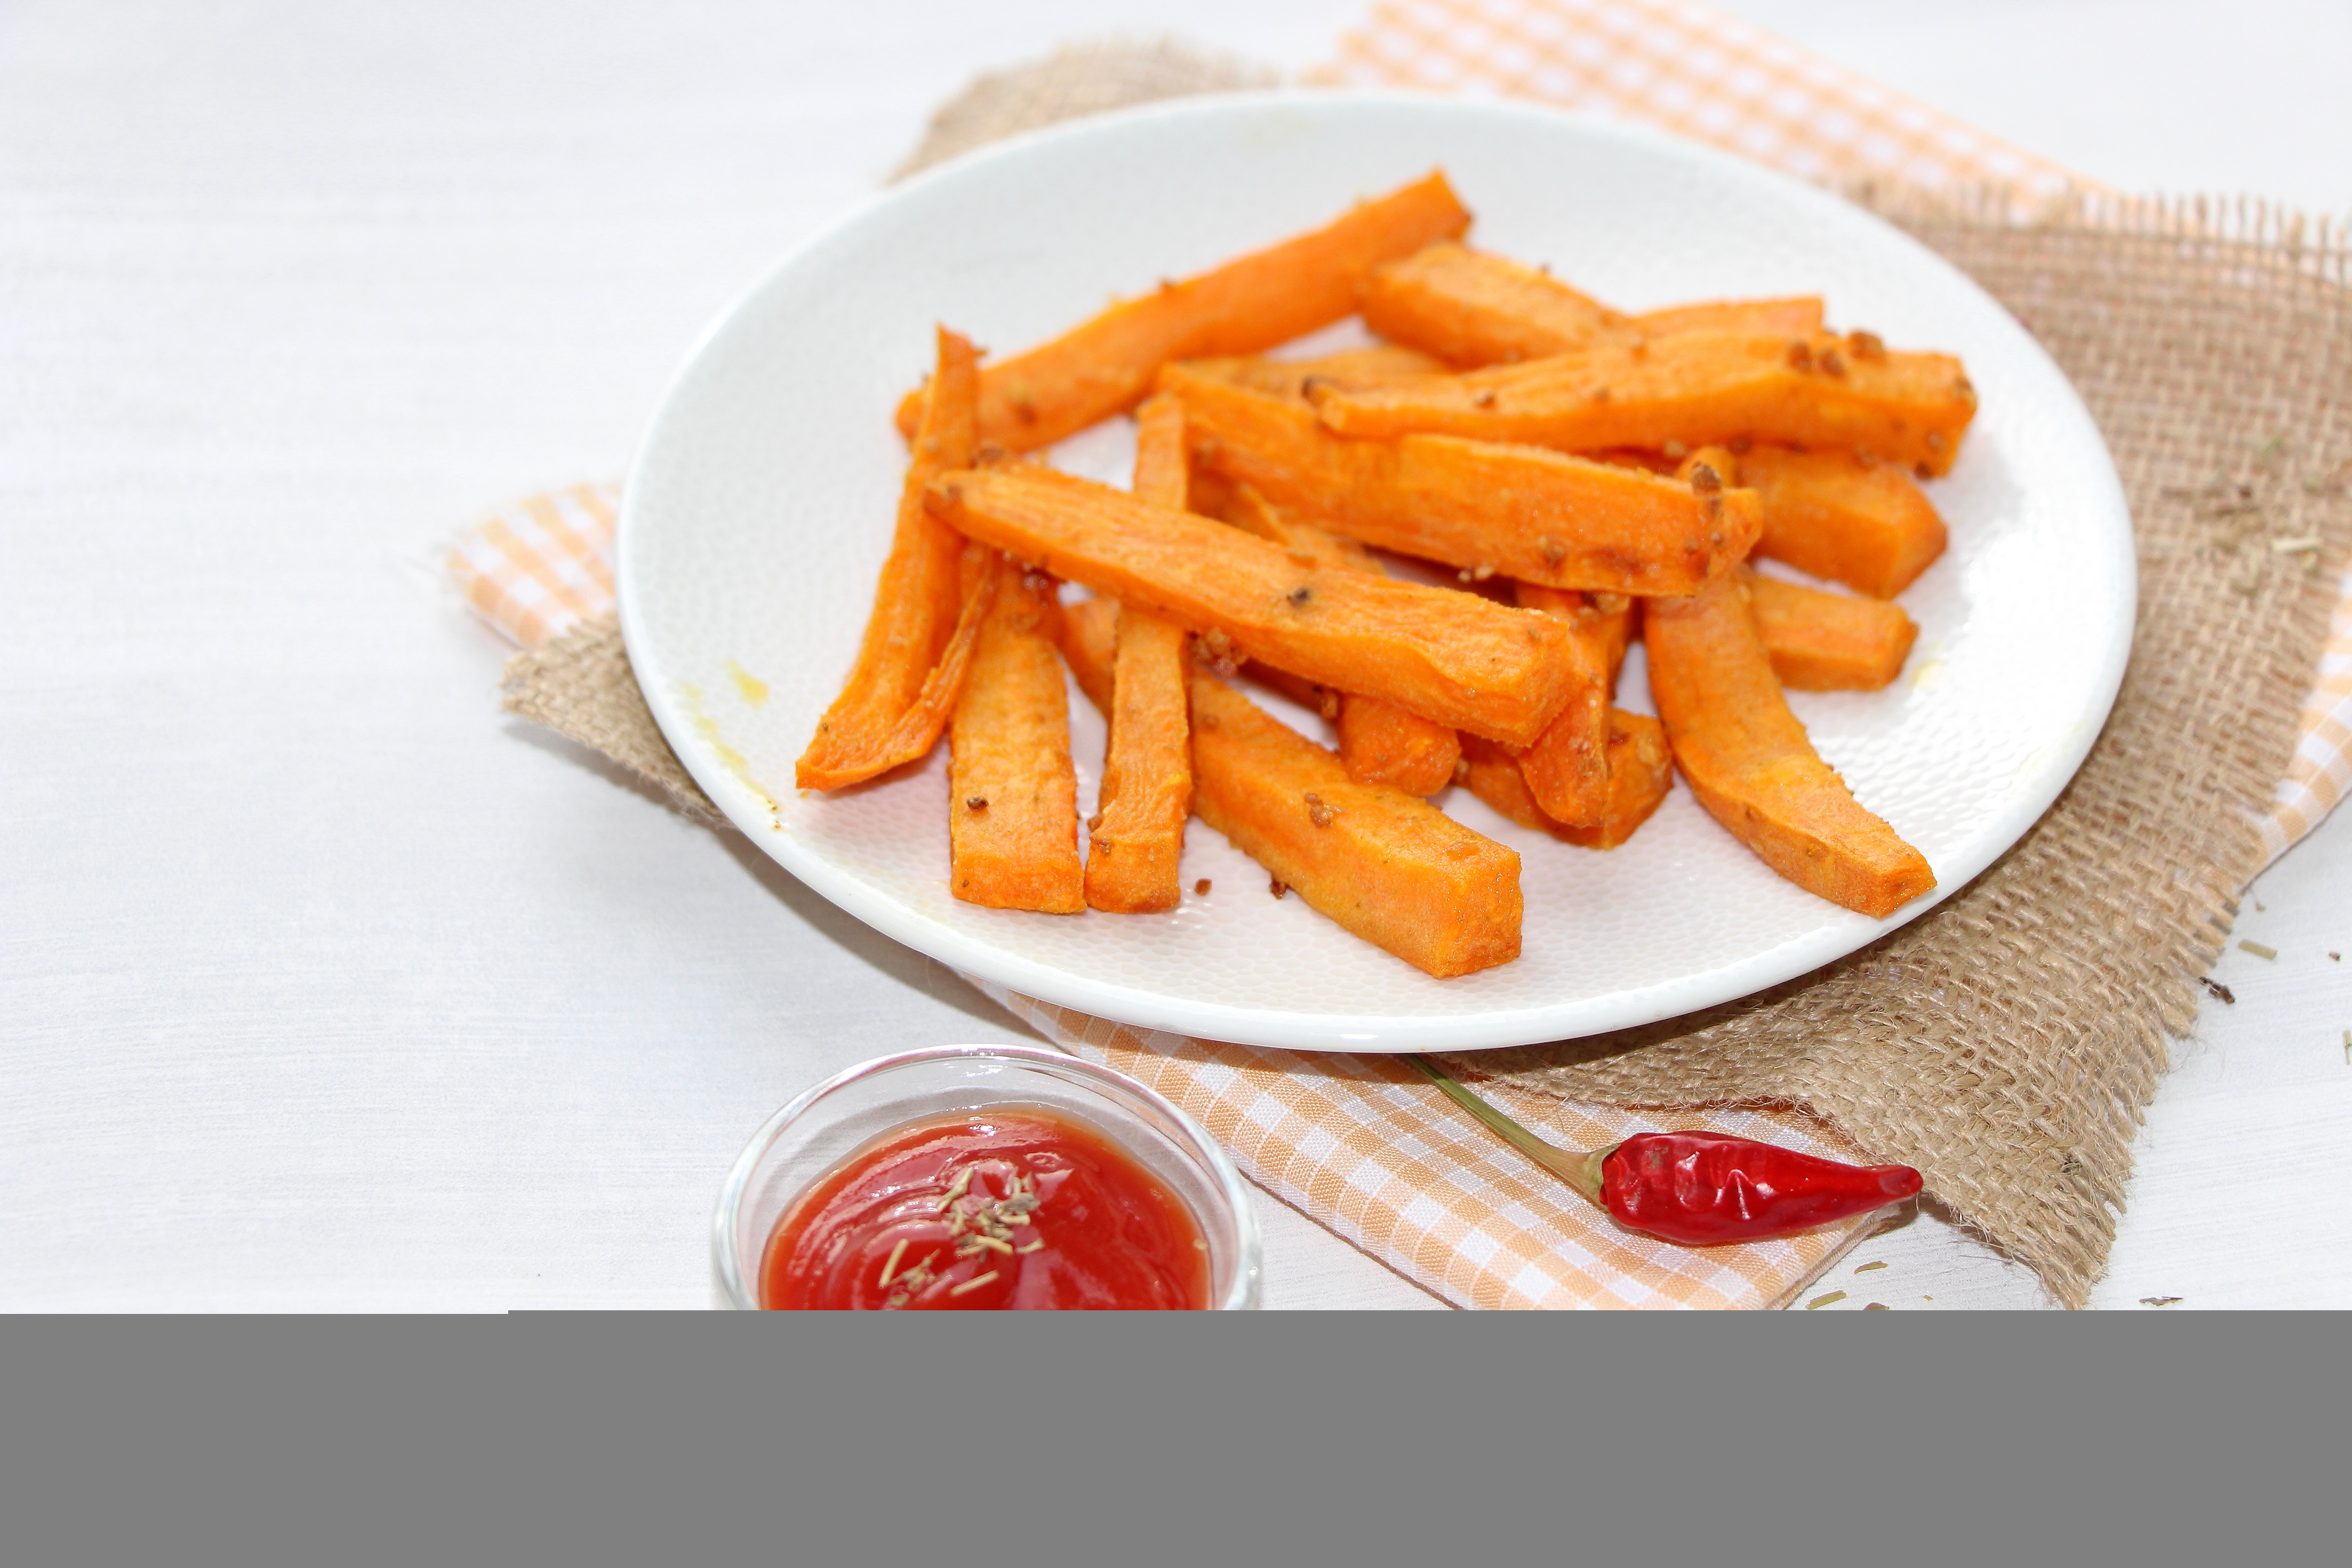 frites de patate douce au four